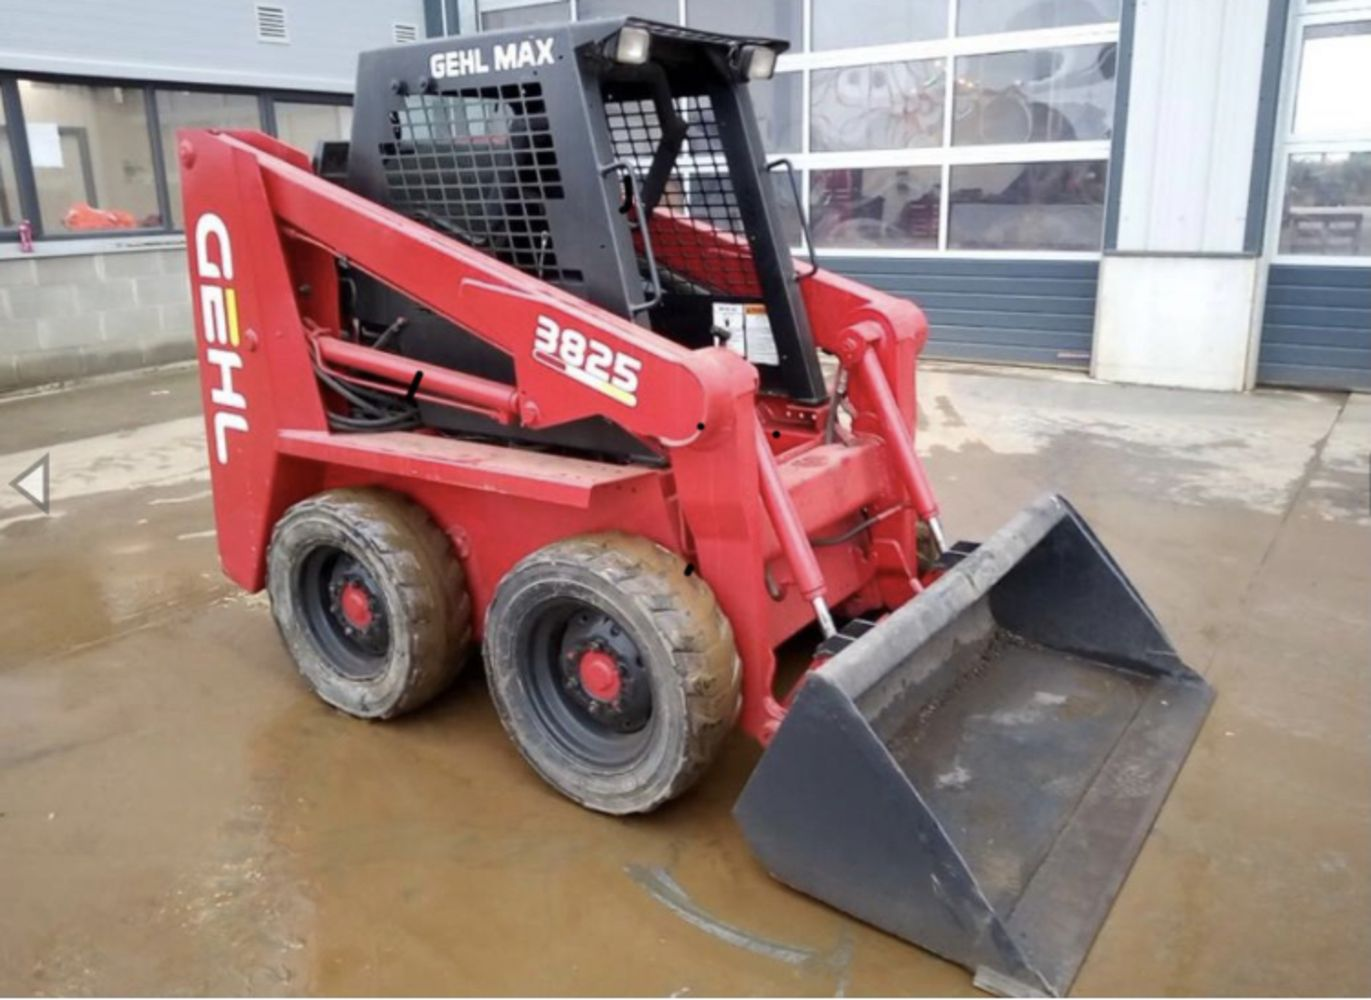 MASSIVE OF EX HIRE PLANT MACHINERY AND COMMERCIALS ENDS SUNDAY THE 8TH AUGUST 6PM.